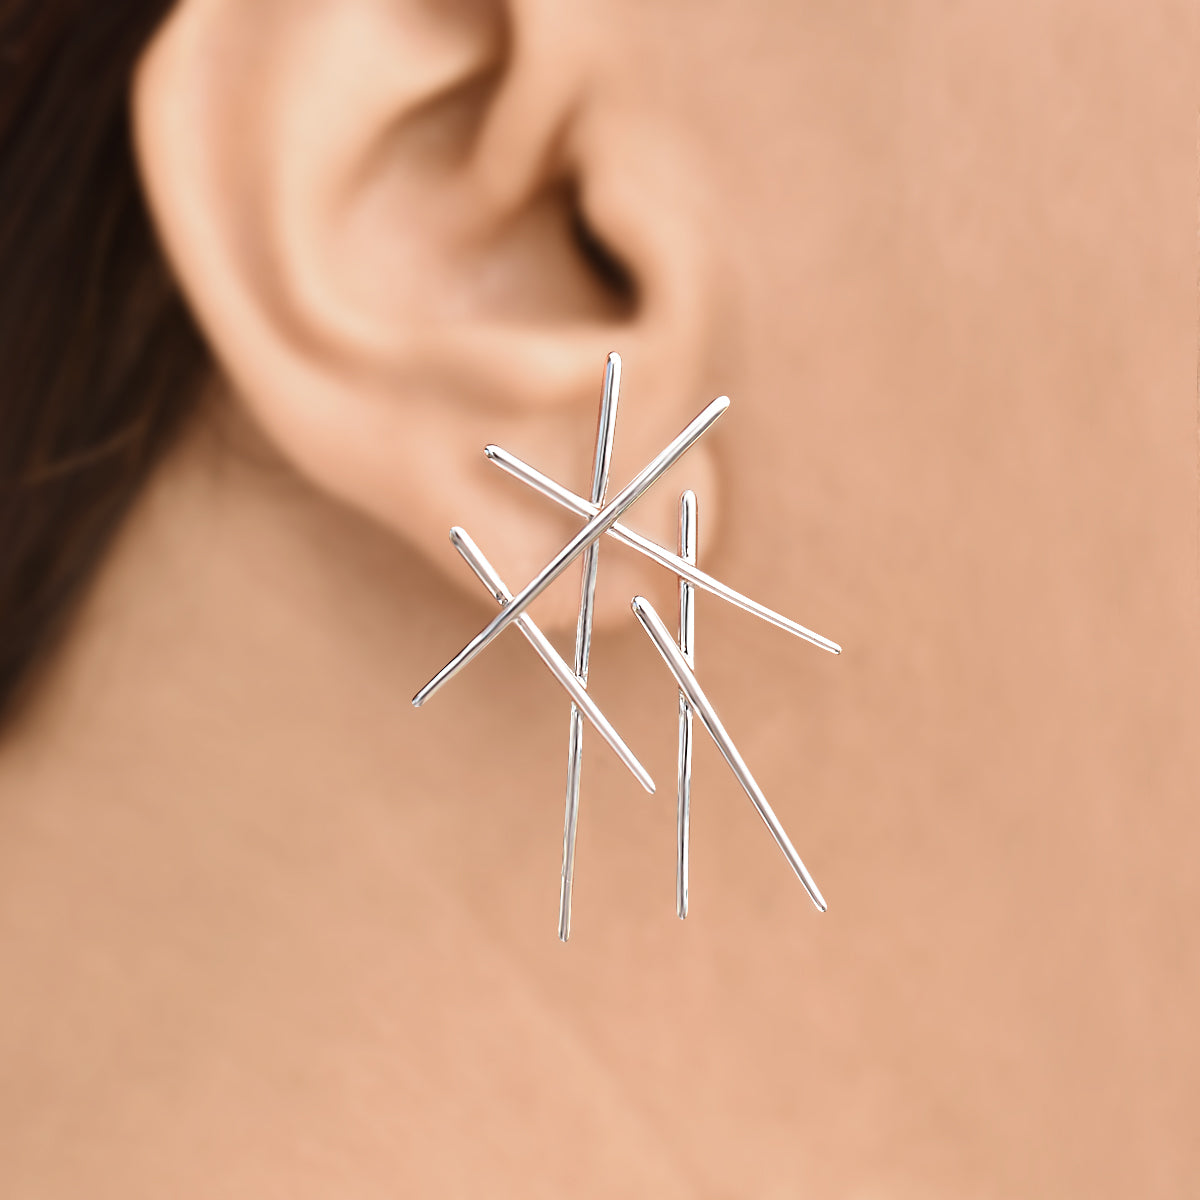 Chic Chopsticks - Drop earrings - Aliame